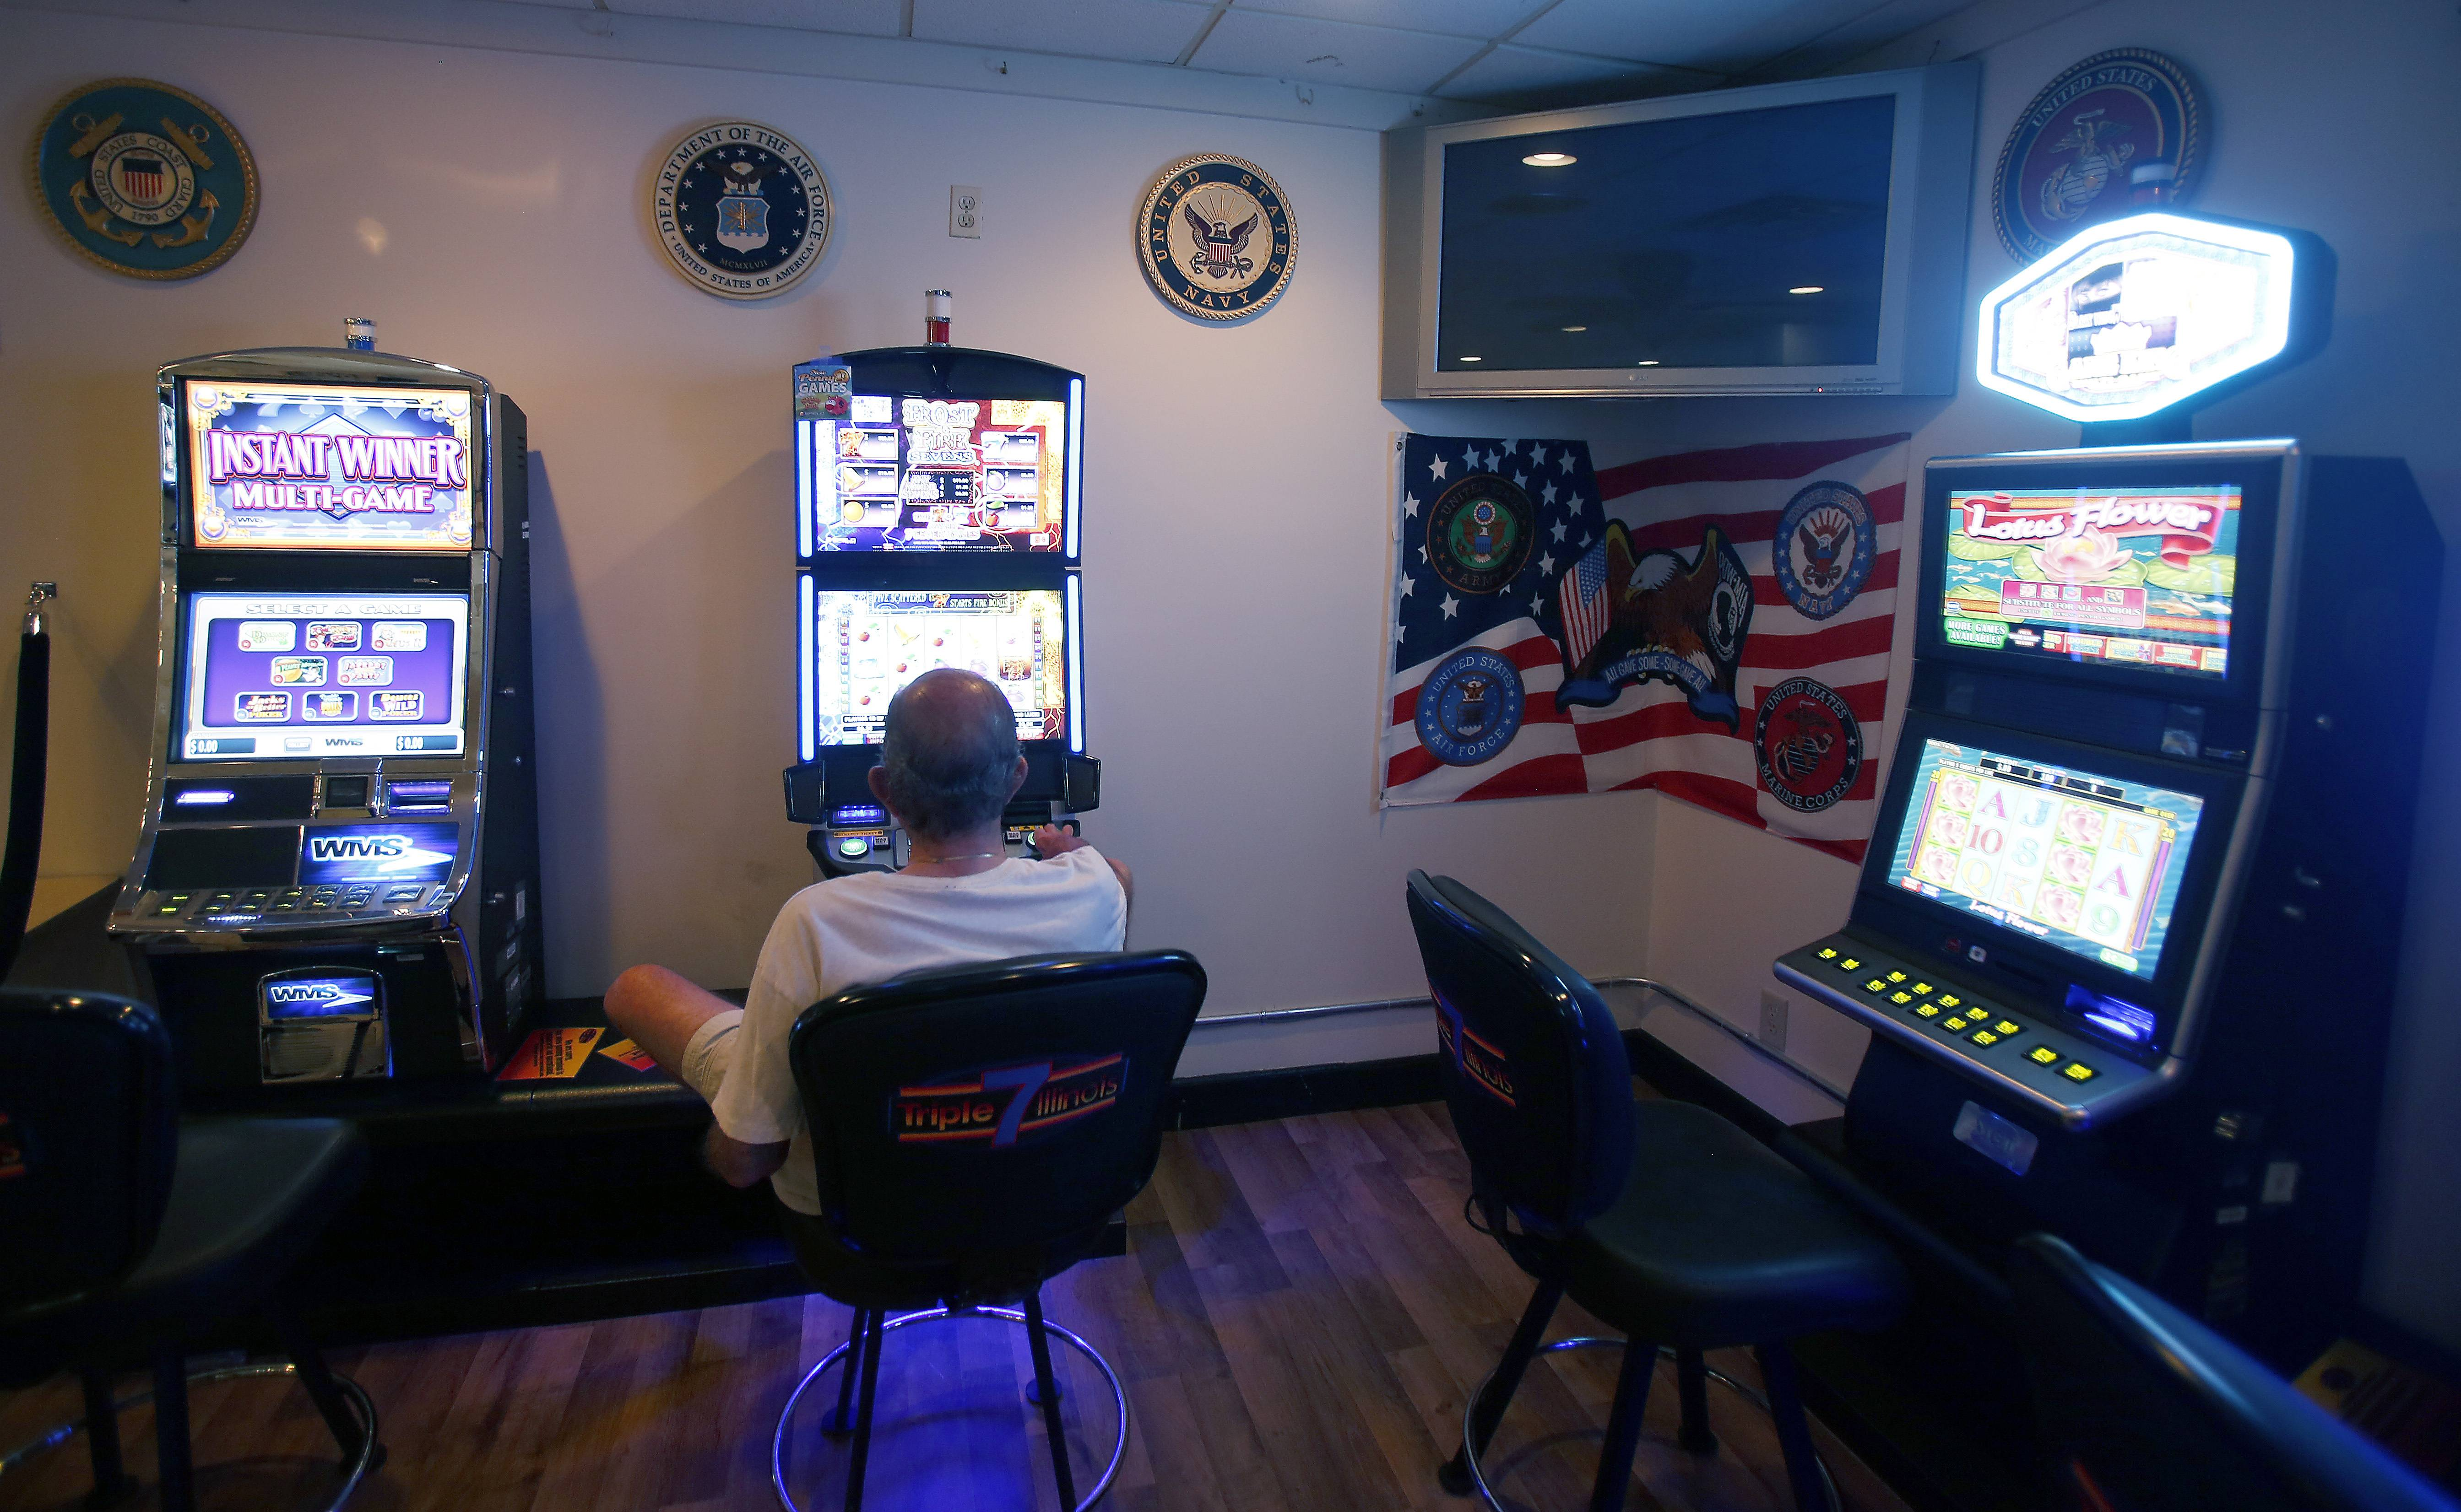 Faced with declining membership, American Legion halls, such as this one in Huntley, are betting on their survival through installation of video gambling machines.